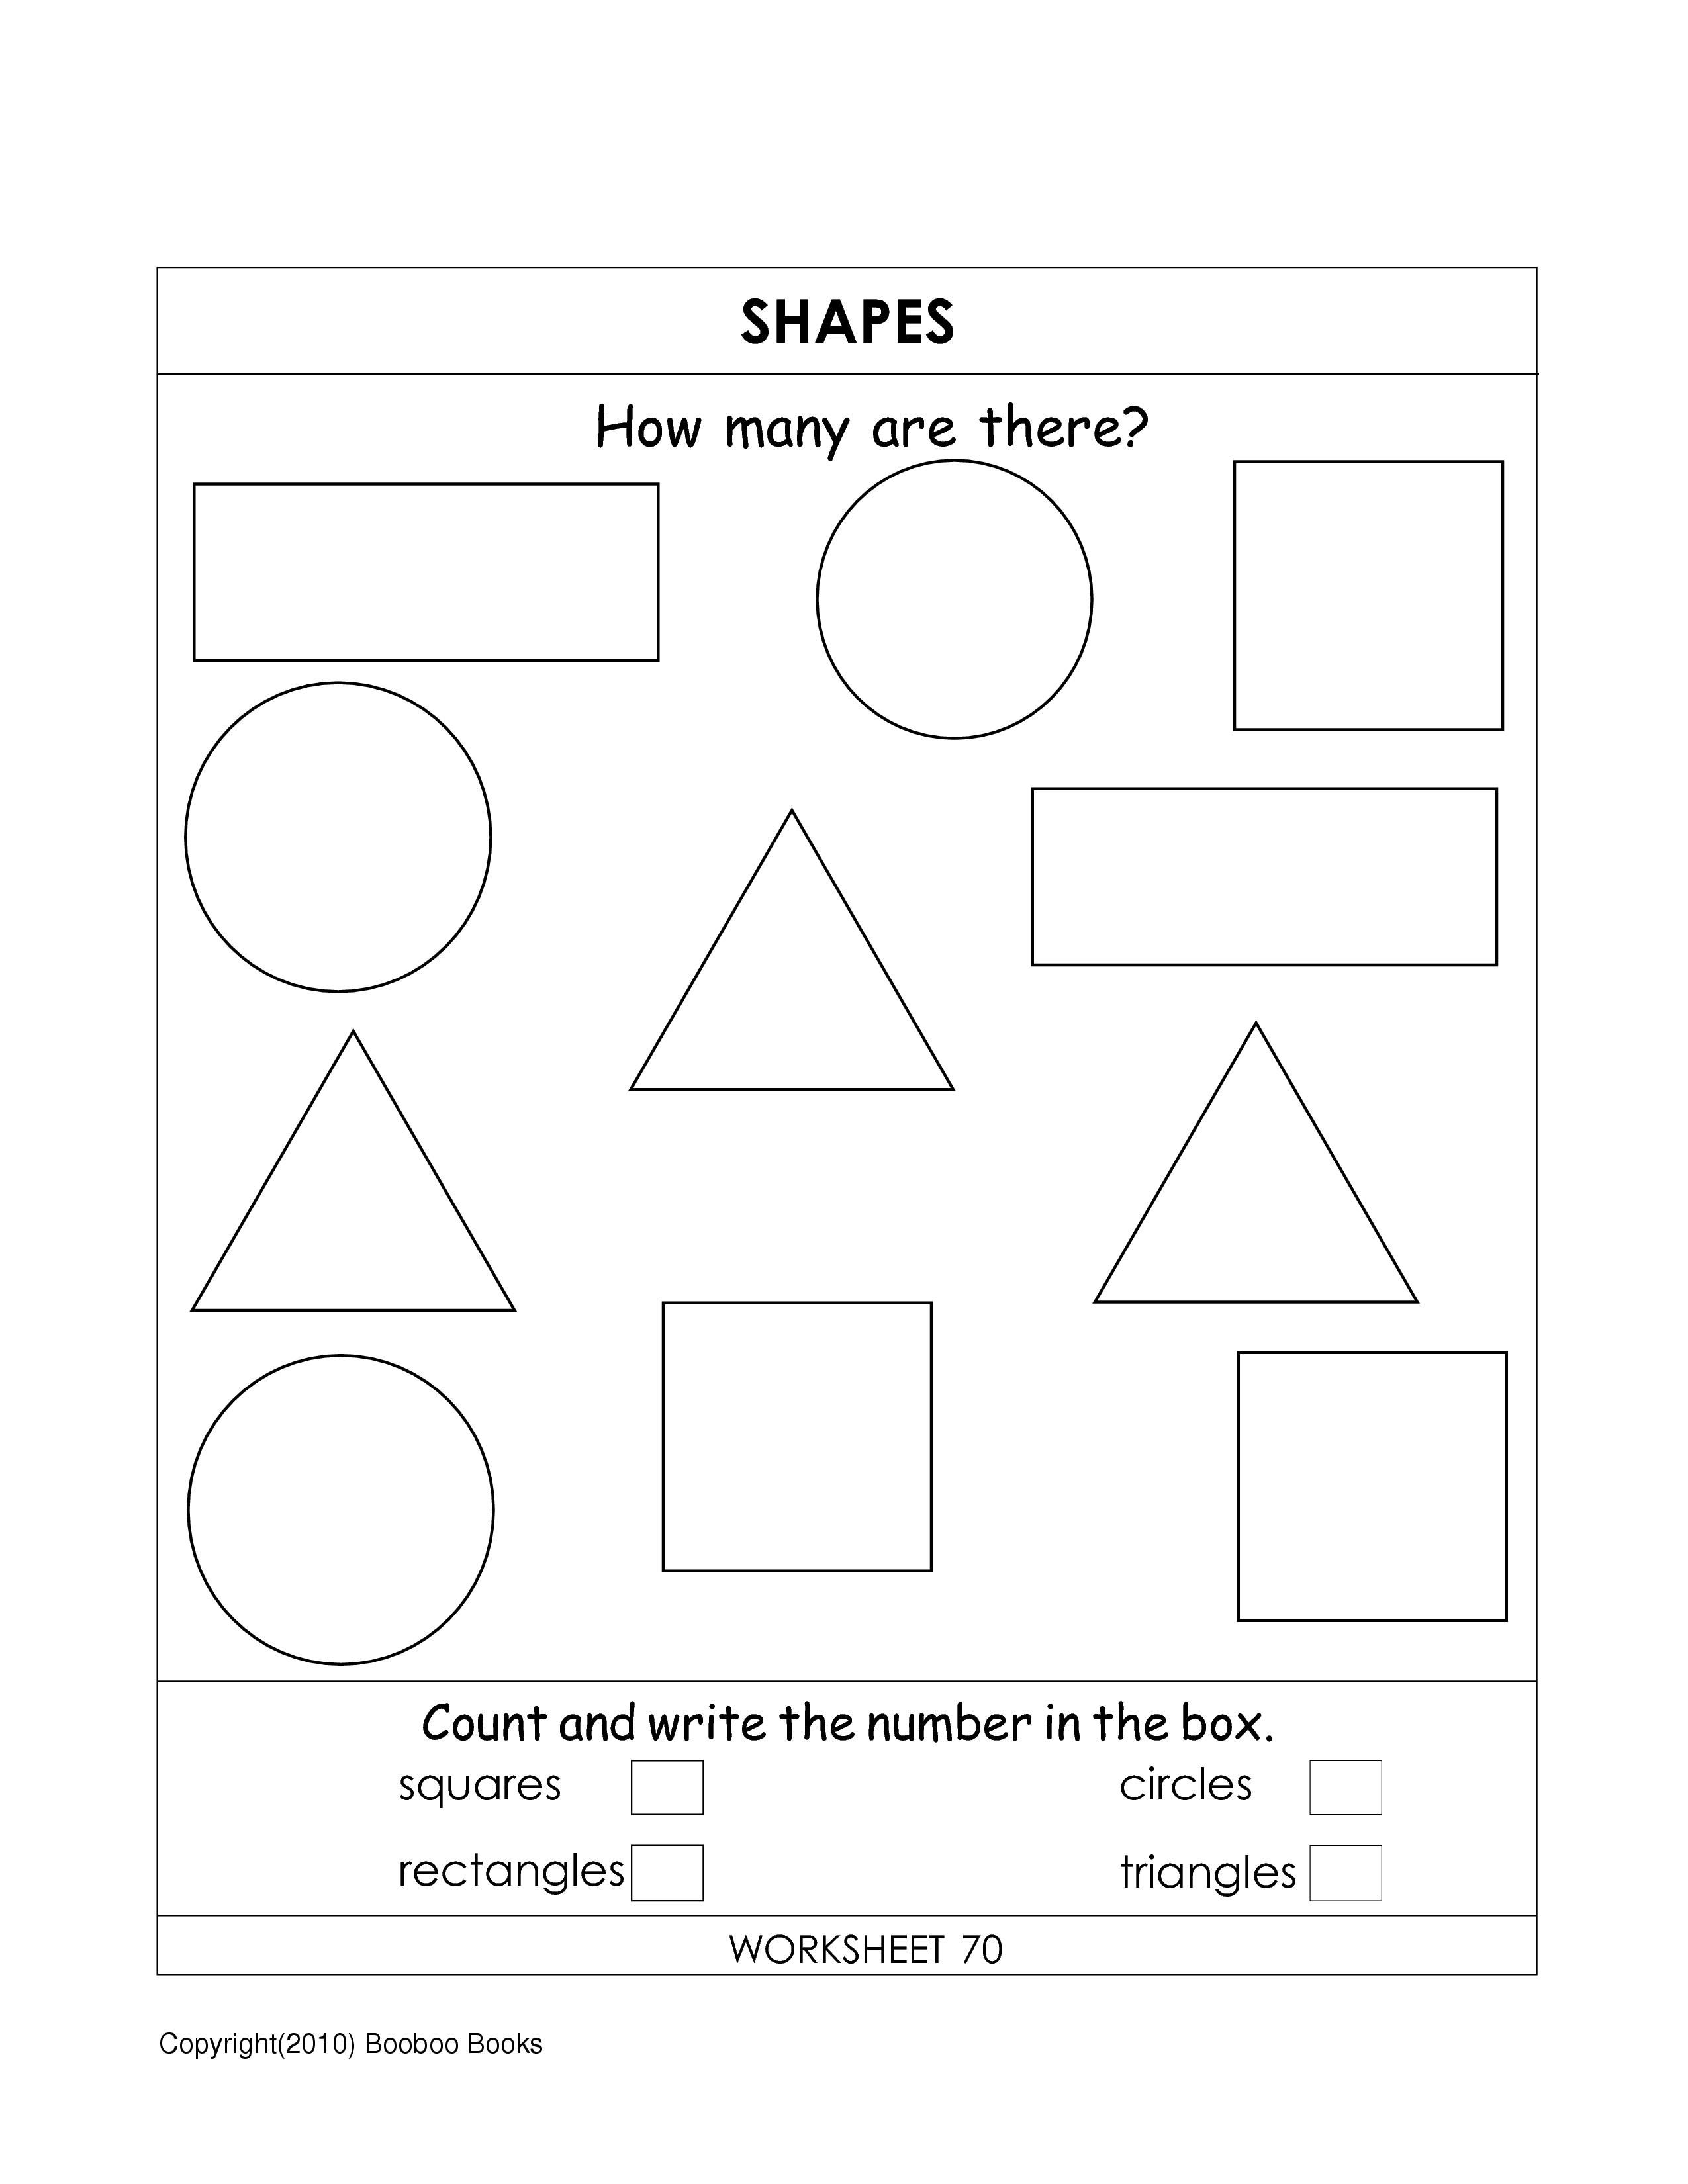 Shapes For Kids Teaching Shapes With Flashcards Activities Worksheets Videos Teaching Shapes Shapes For Kids Fun Worksheets For Kids [ 3300 x 2550 Pixel ]